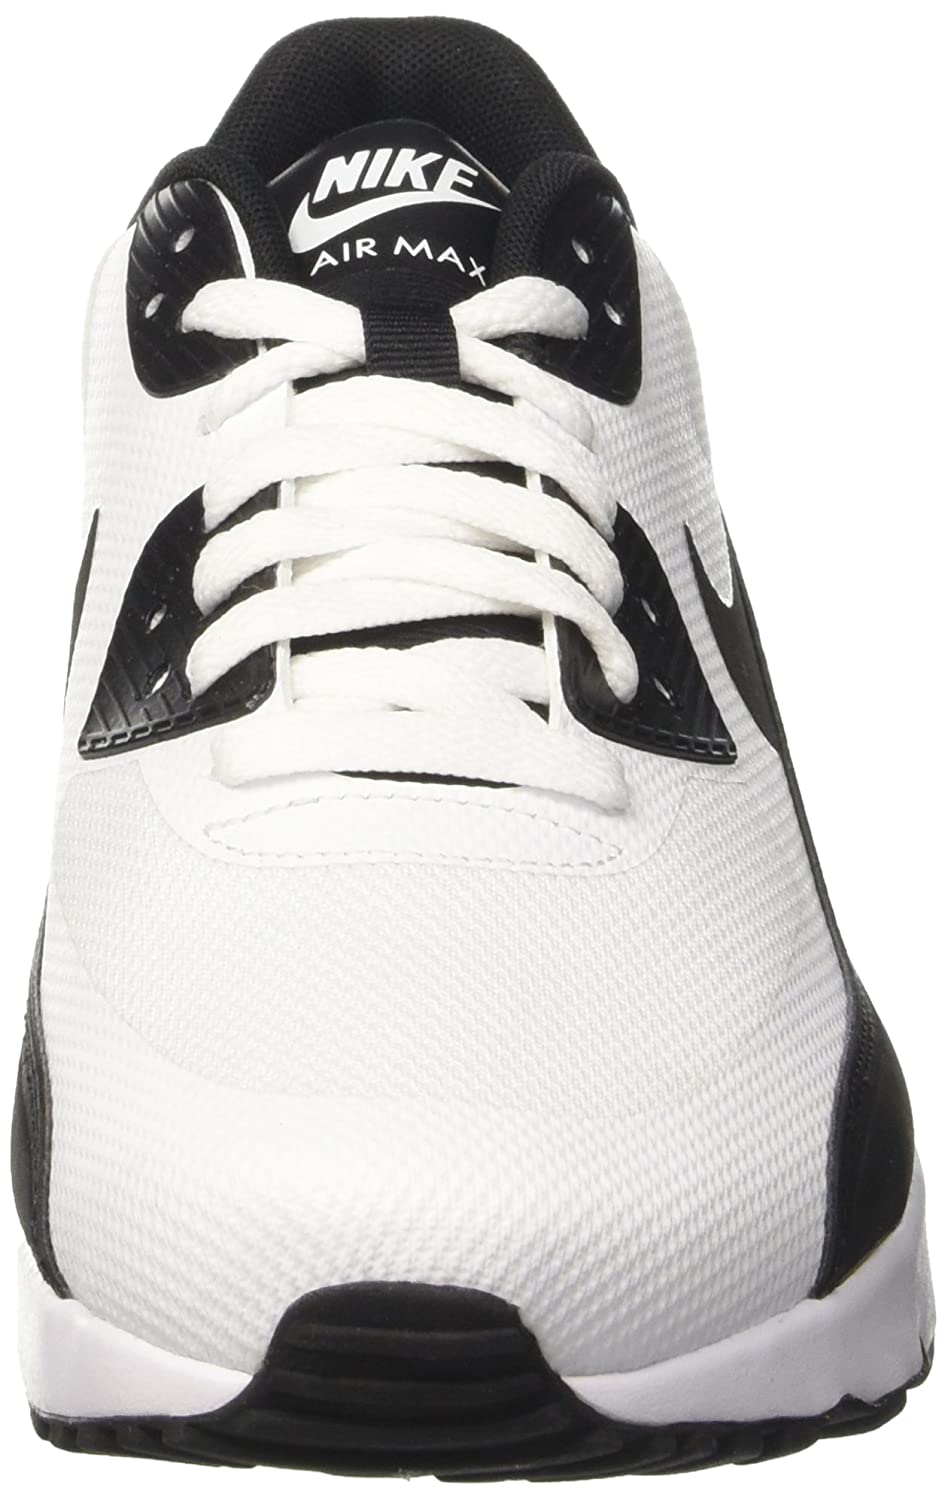 31a5aa8699 Amazon.com | Nike AIR MAX 90 Ultra 2.0 Essential Mens Running-Shoes 875695-100_10  - White/Black-White | Road Running